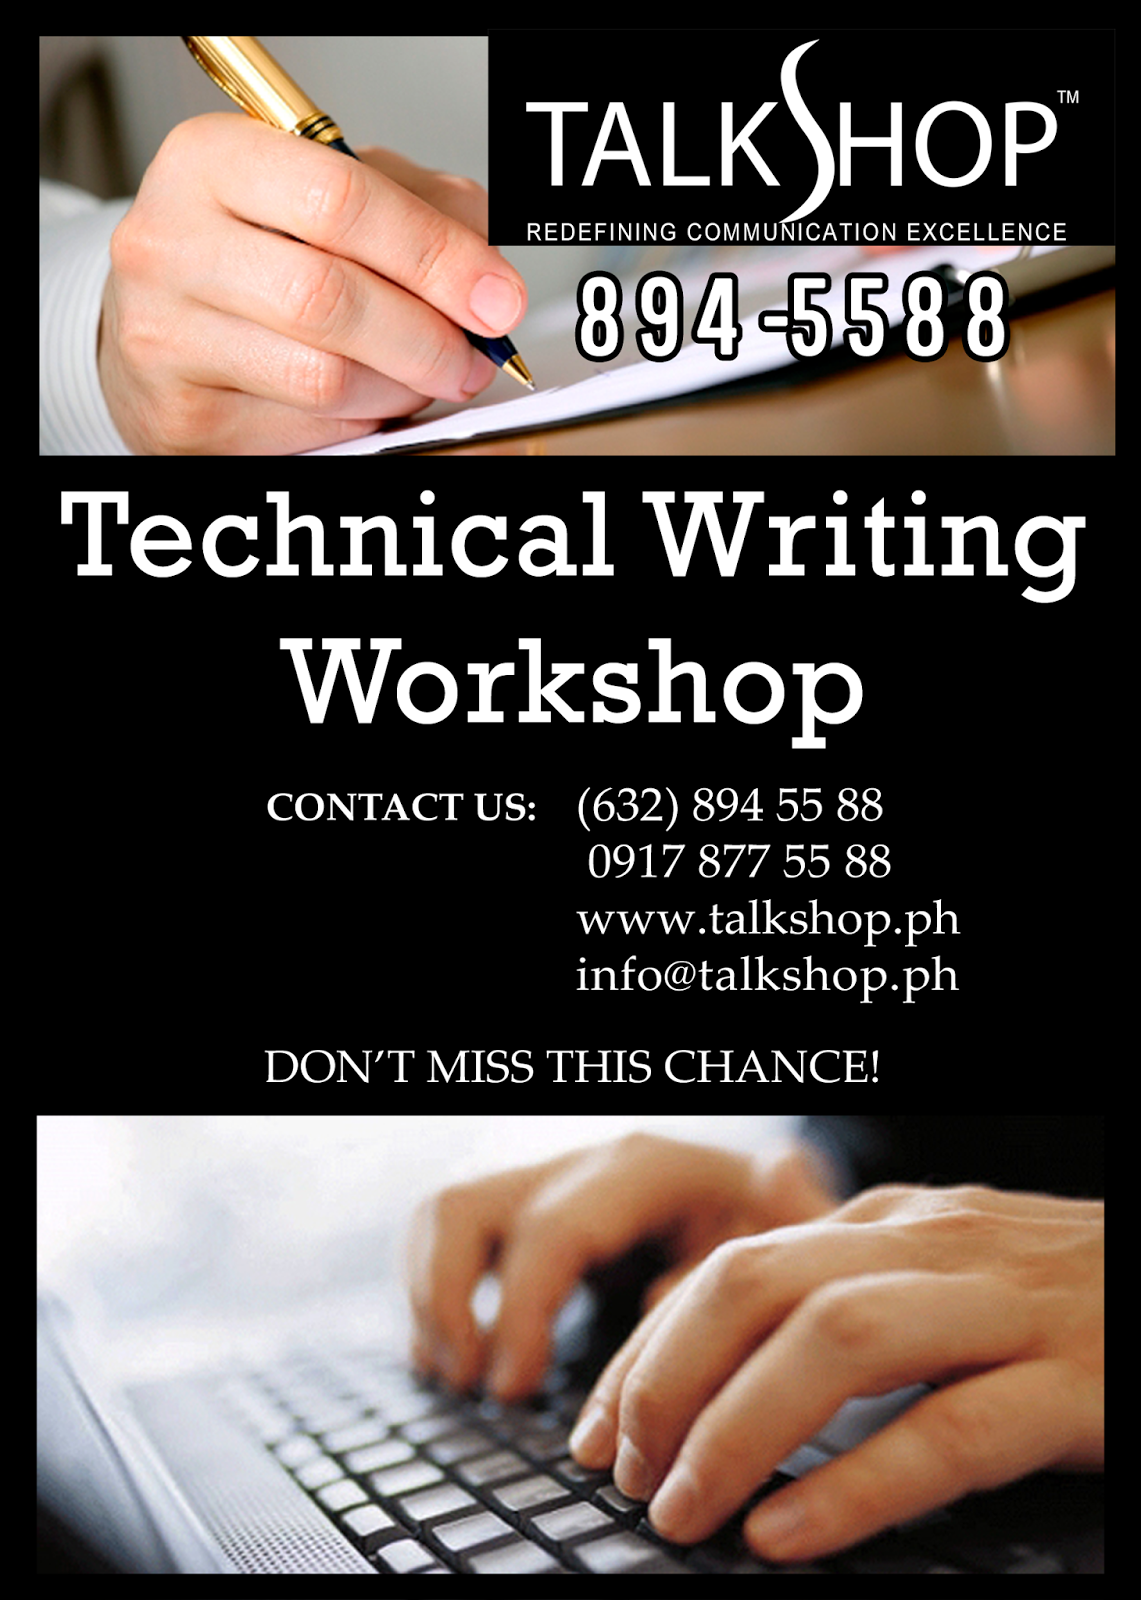 TalkShop Technical Writing Workshop